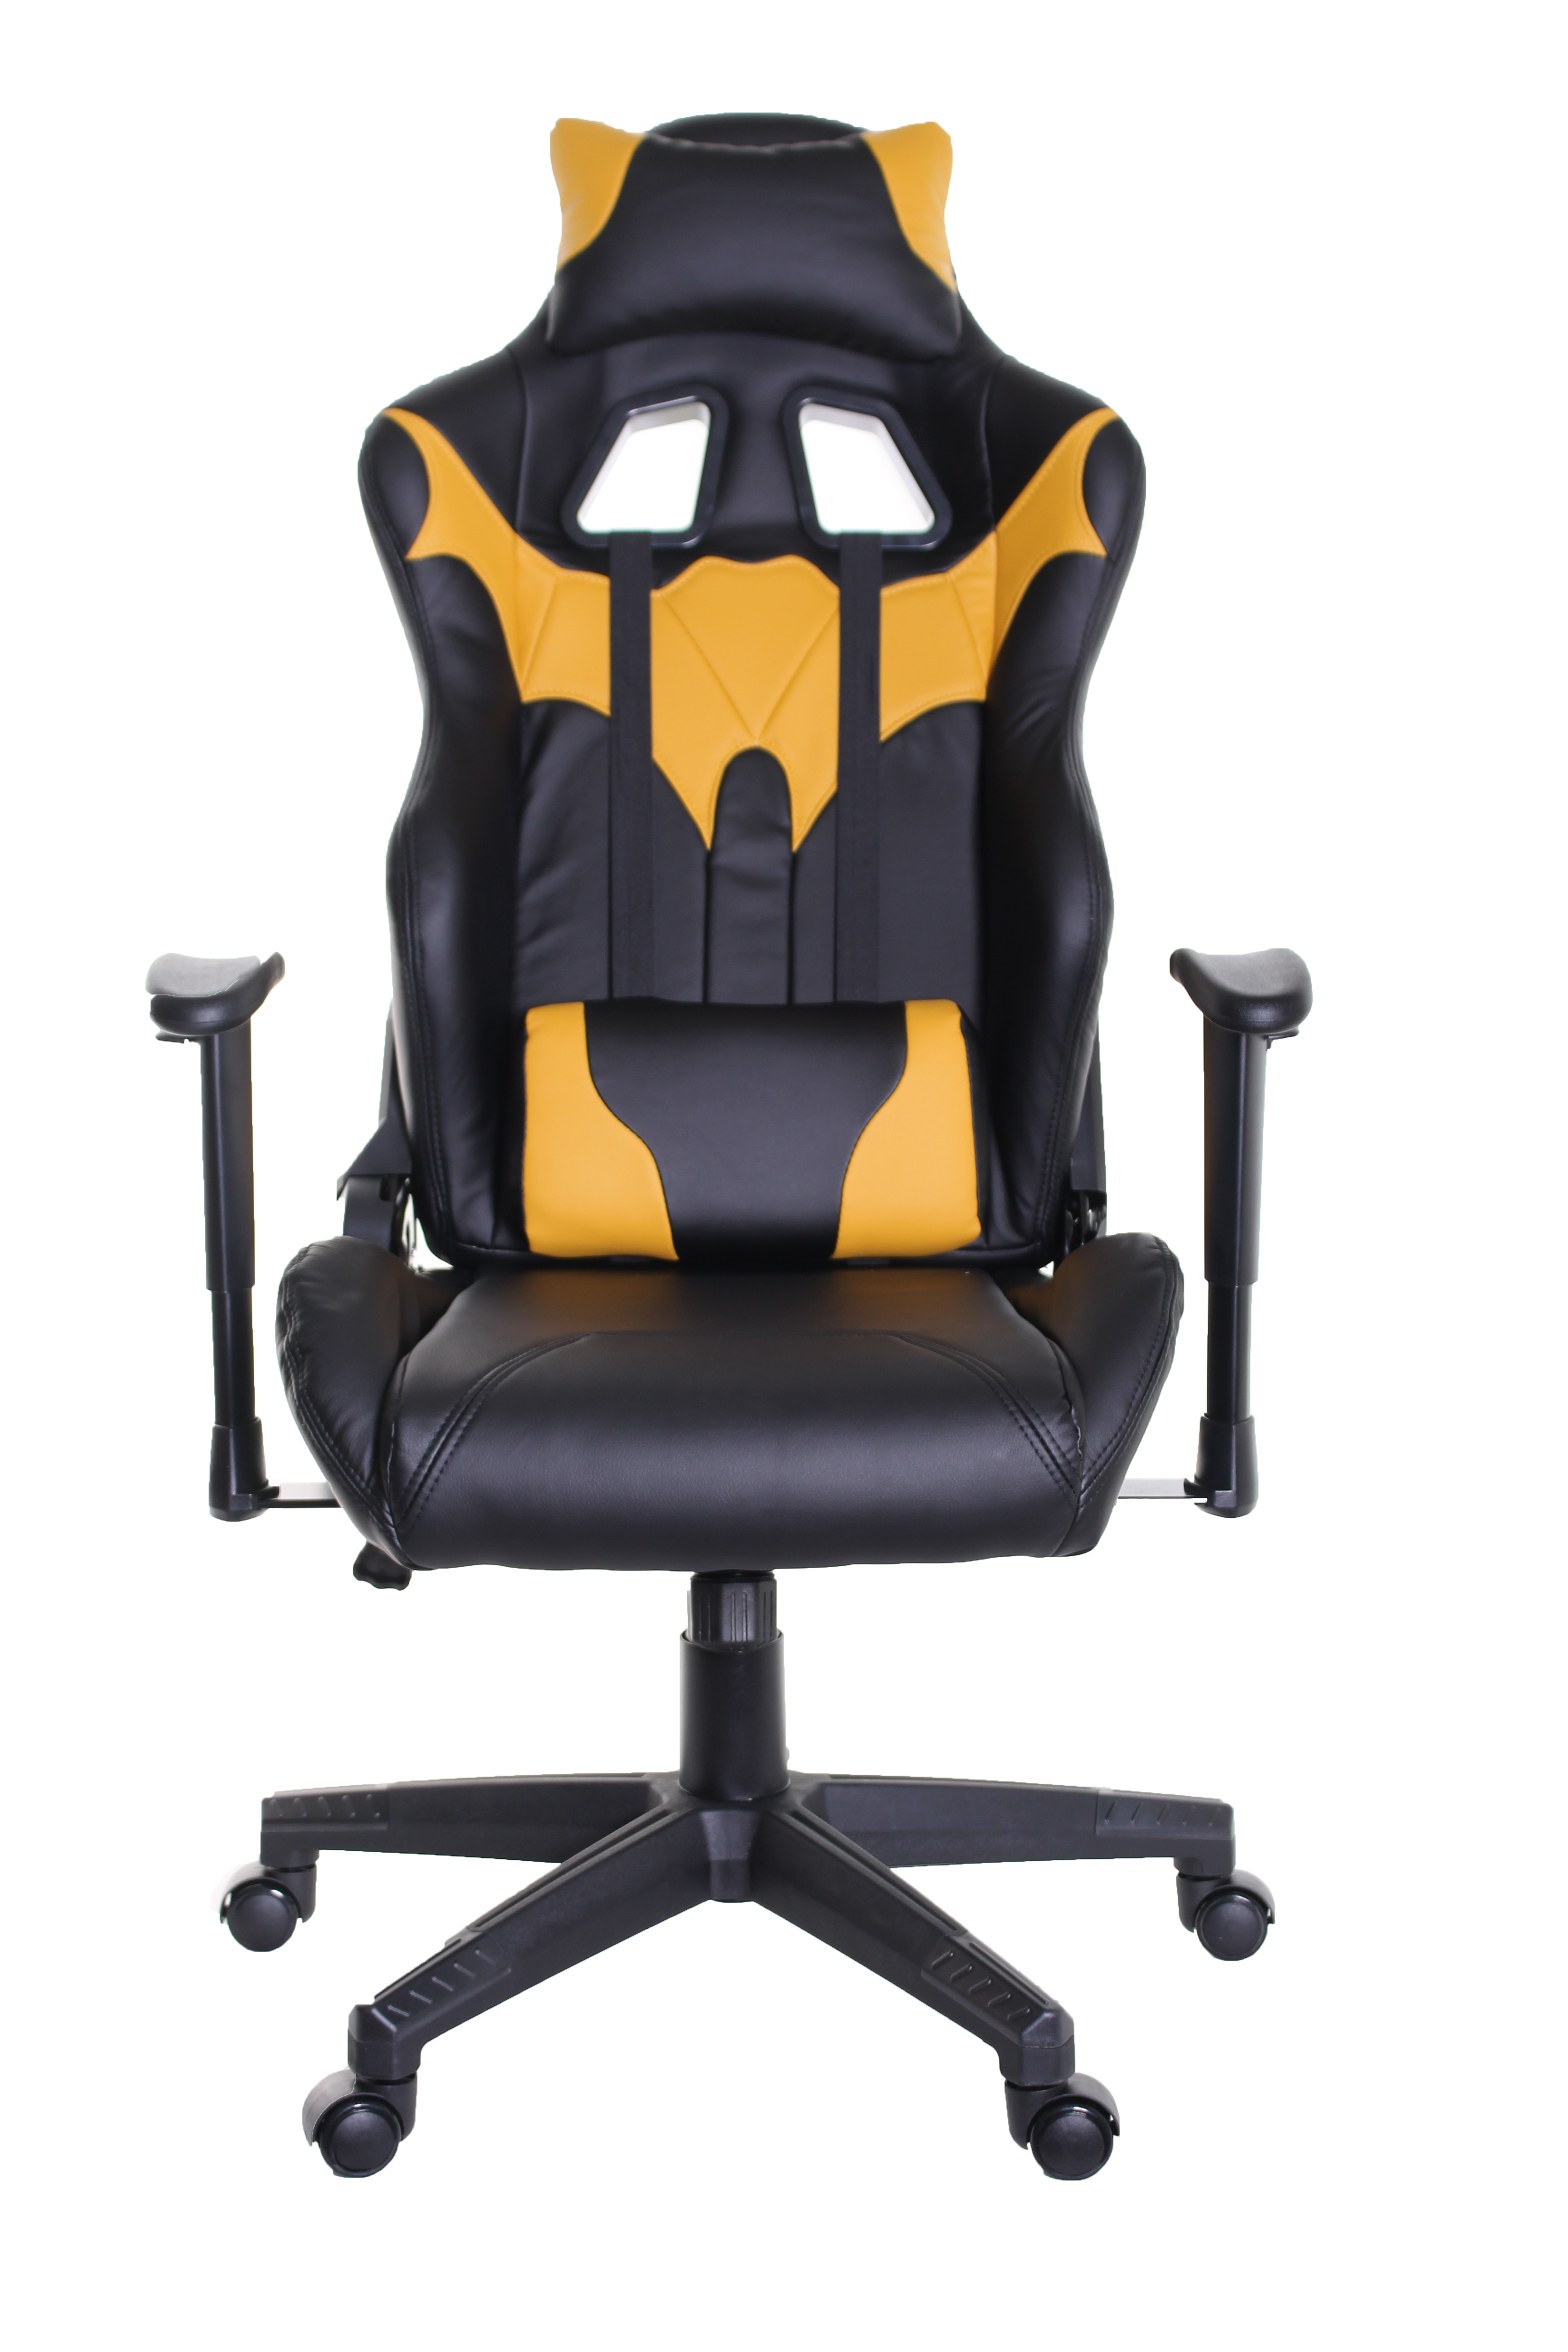 Video Chair Timeoffice Batman Series Ergonomic Video Gaming Chair Race Car